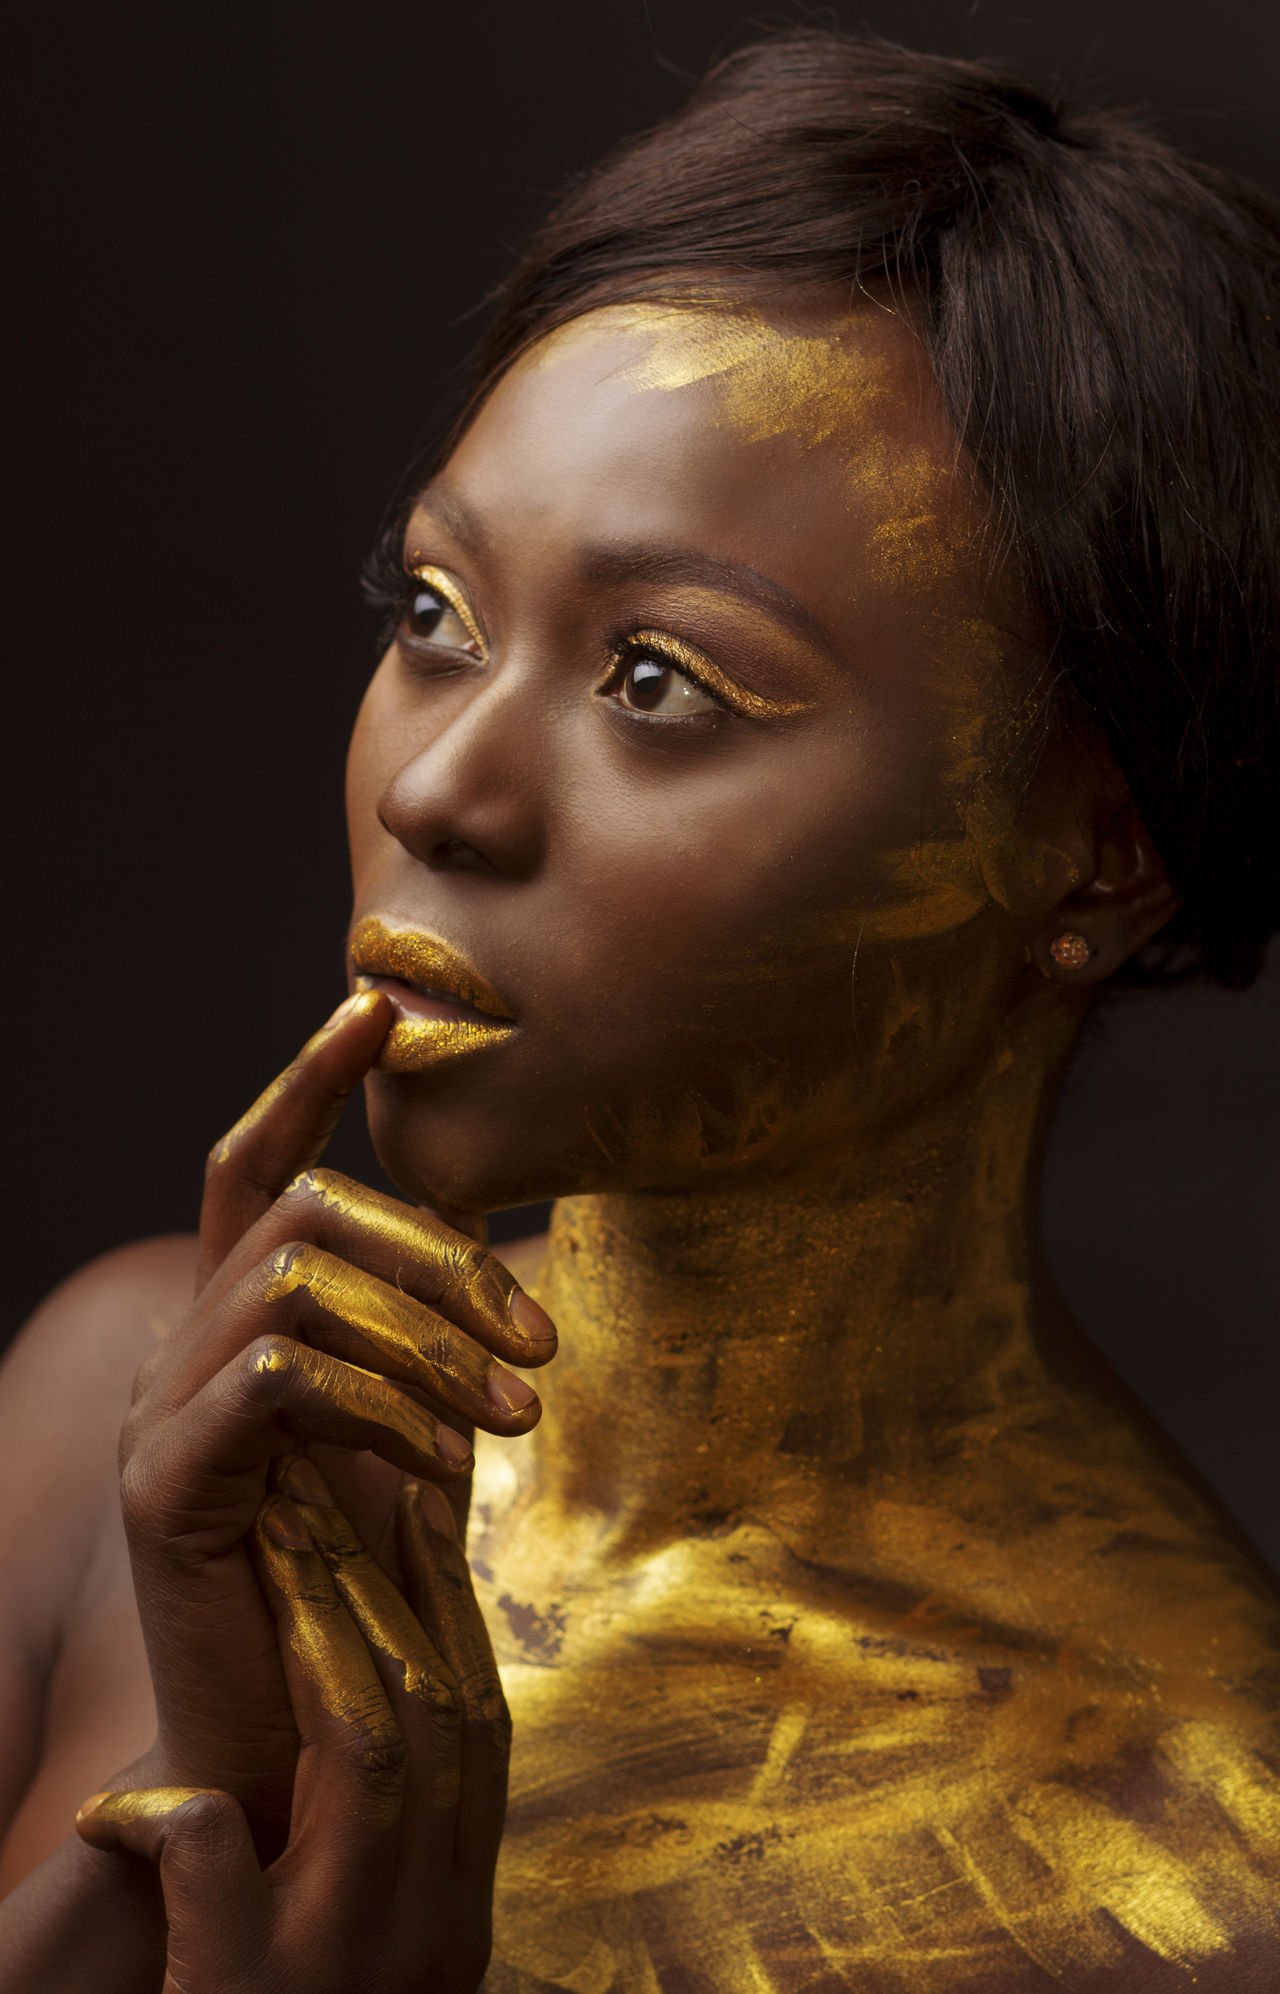 African African Beauty Beauty Black Black Background Black Girl Close-up Editorial Fashion Editorial Photography Gold Colored Human Body Part Human Hand Makeup Portrait Shadow Shadows & Lights Statue Studio Photography Studio Shot